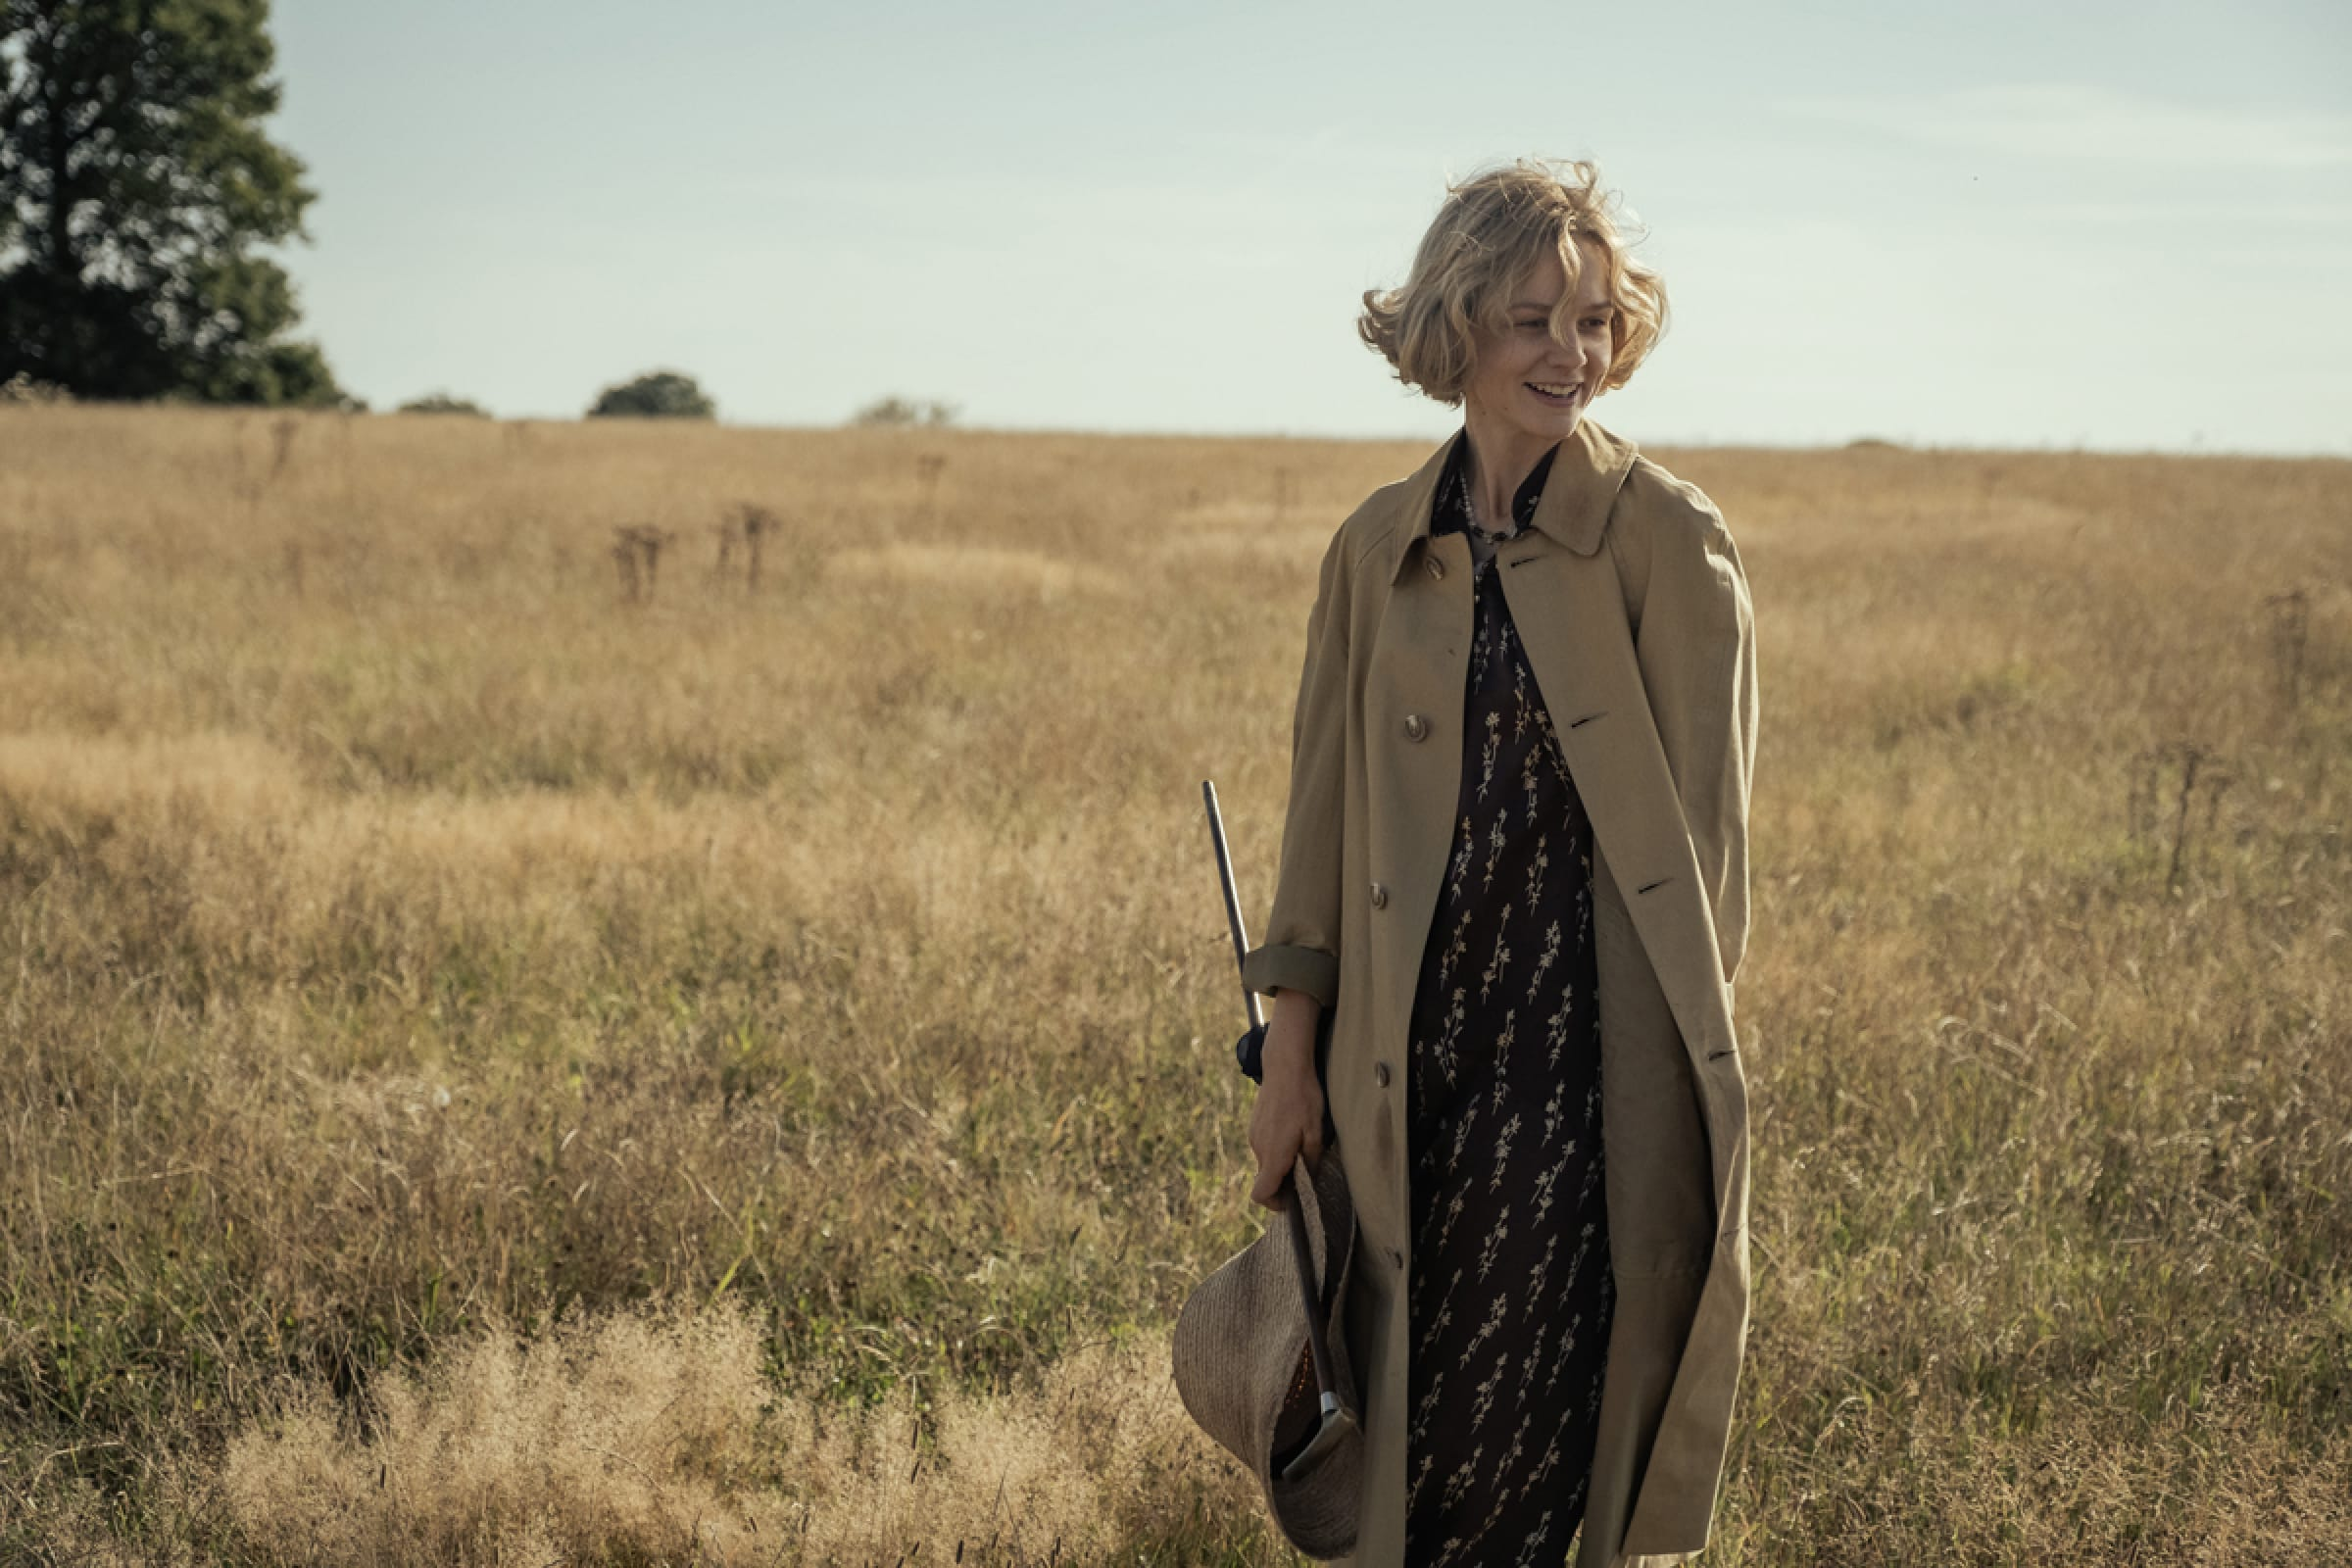 Edith wears a beige trench coat and holds a cane. Her hair blows in what one can only imagine is a sweet and gentle breeze.